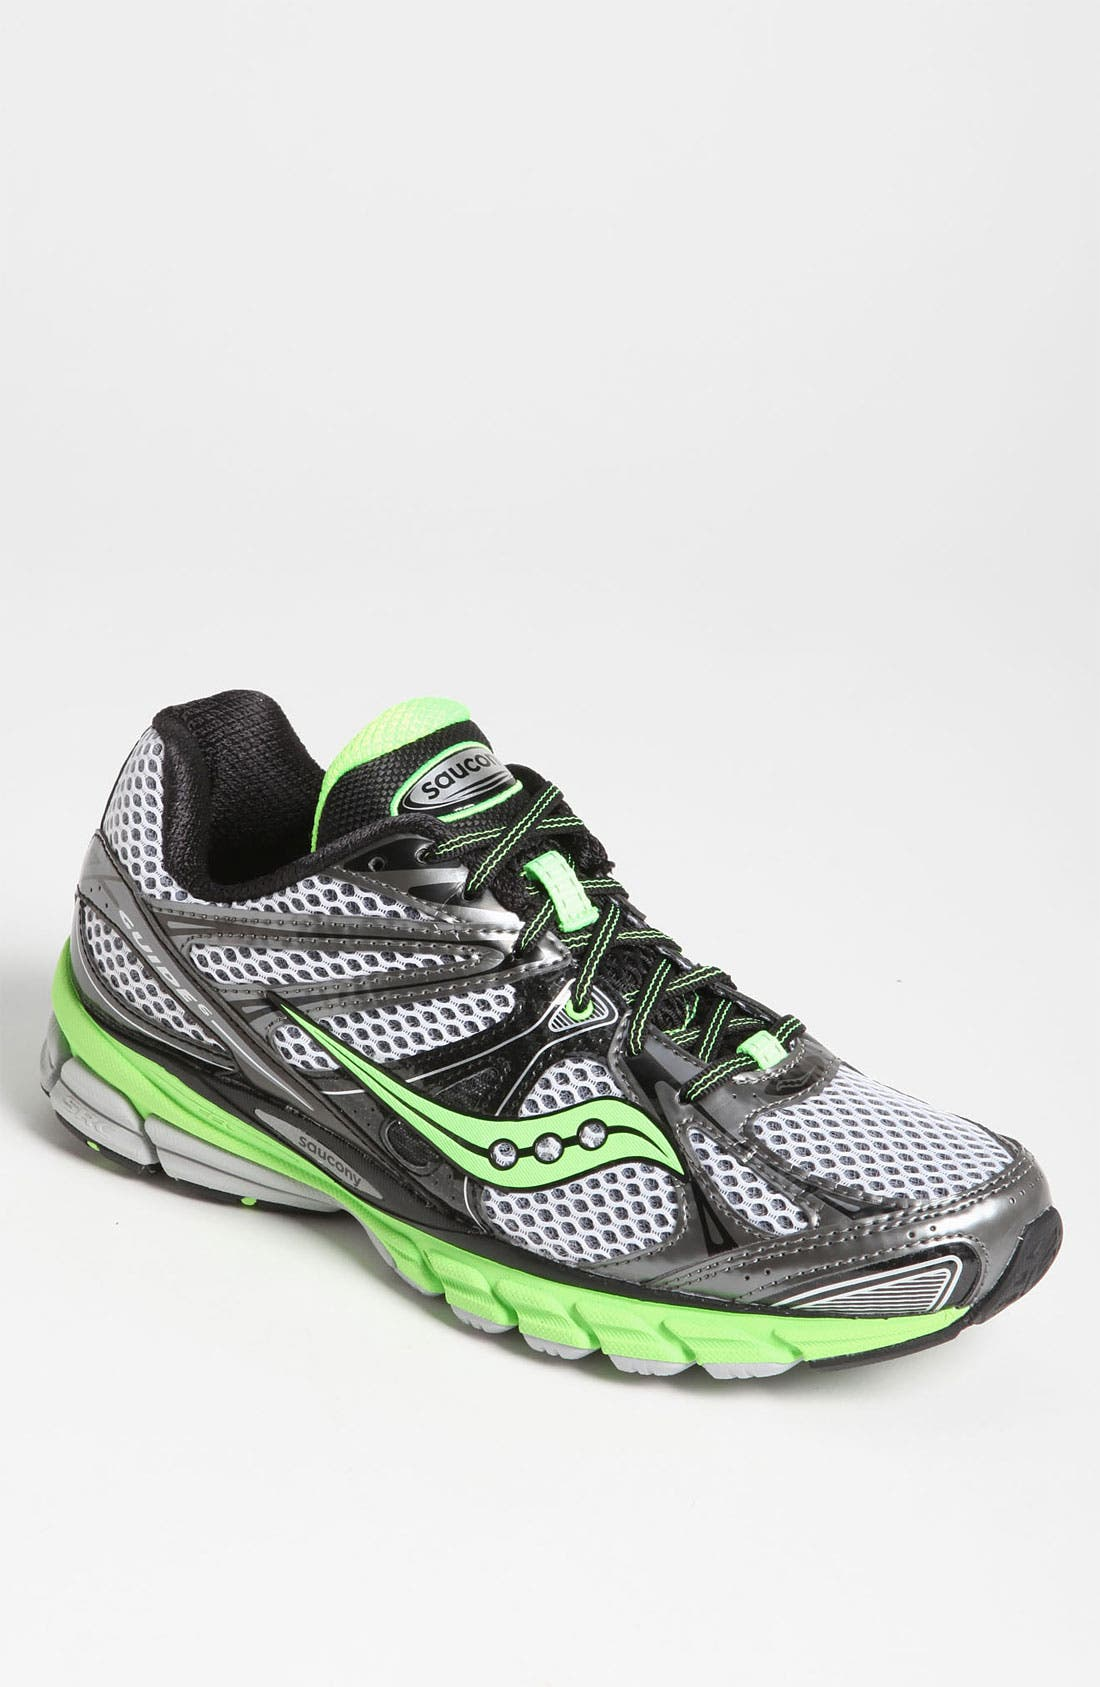 Alternate Image 1 Selected - Saucony 'Guide 6' Running Shoe (Men)